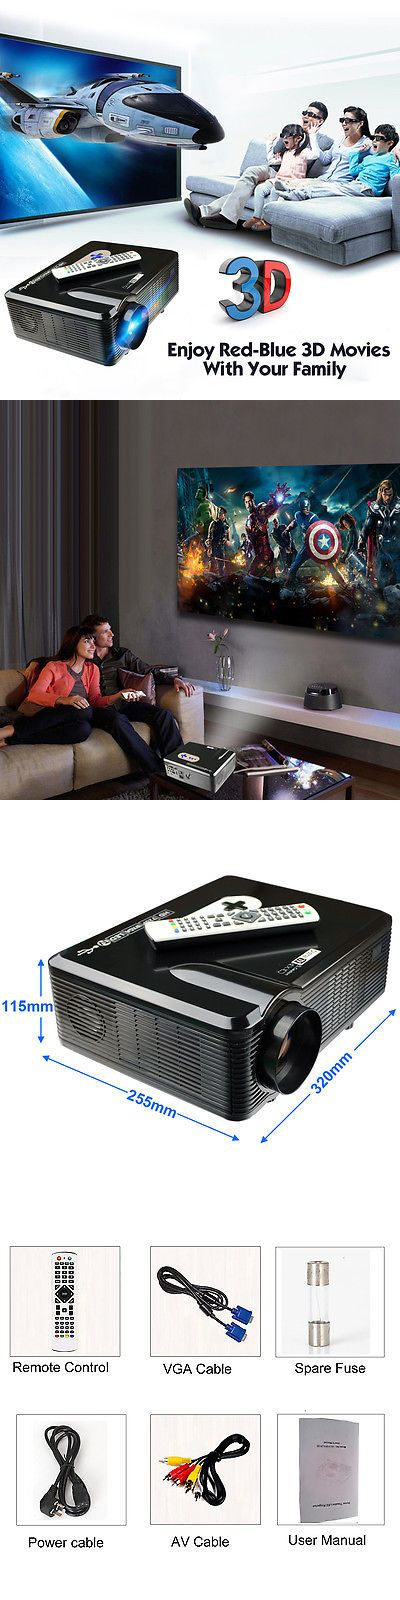 Home Theater Projectors: 3000 Lumens Hd Home Theater Multimedia Led Video Projector 1080P 3D Hdmi Tv Vga -> BUY IT NOW ONLY: $149.99 on eBay!